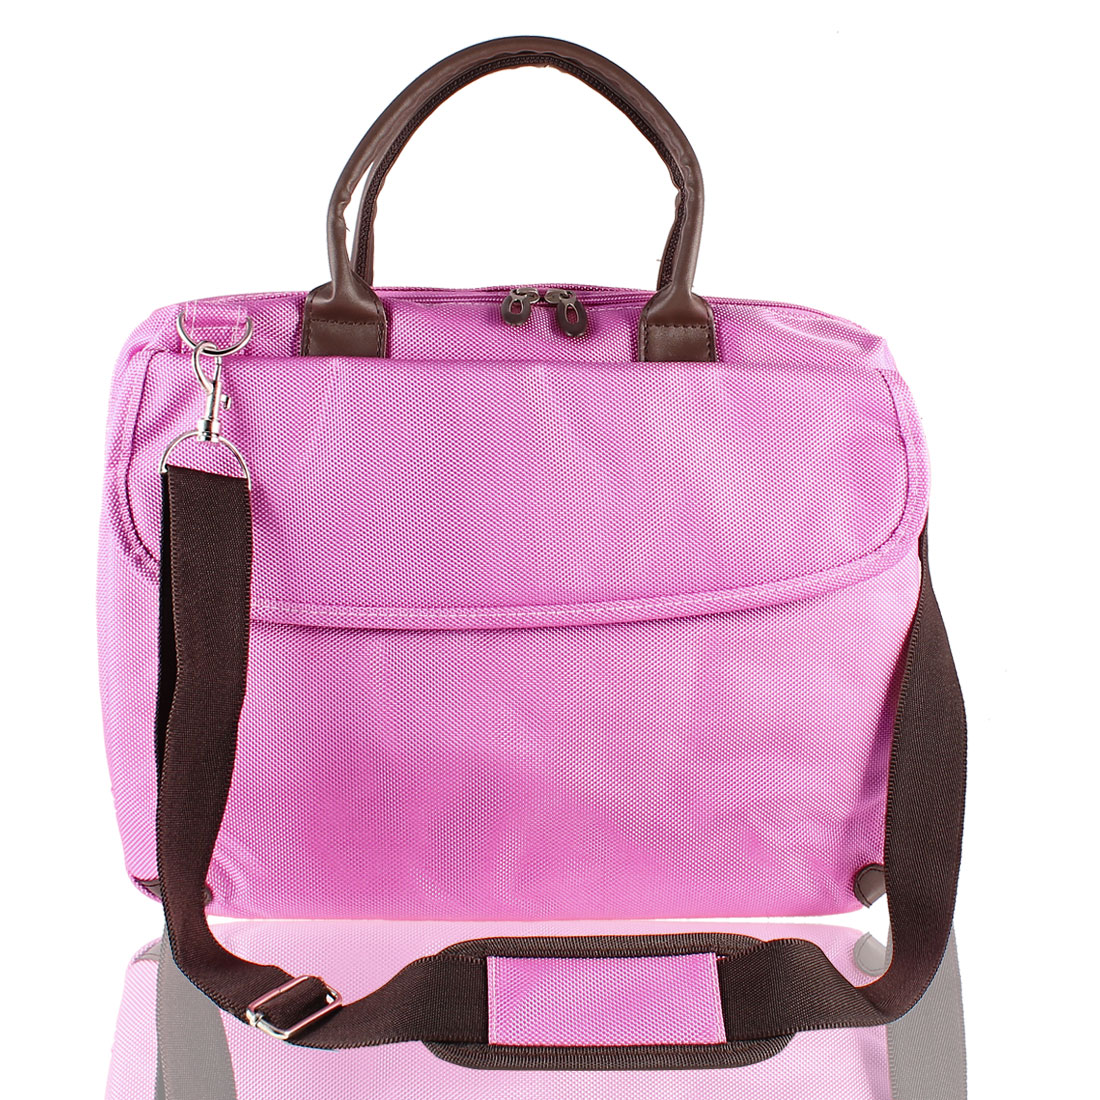 "Pink 14.4"" Notebook Handbag Carrying Shoulder Bag"